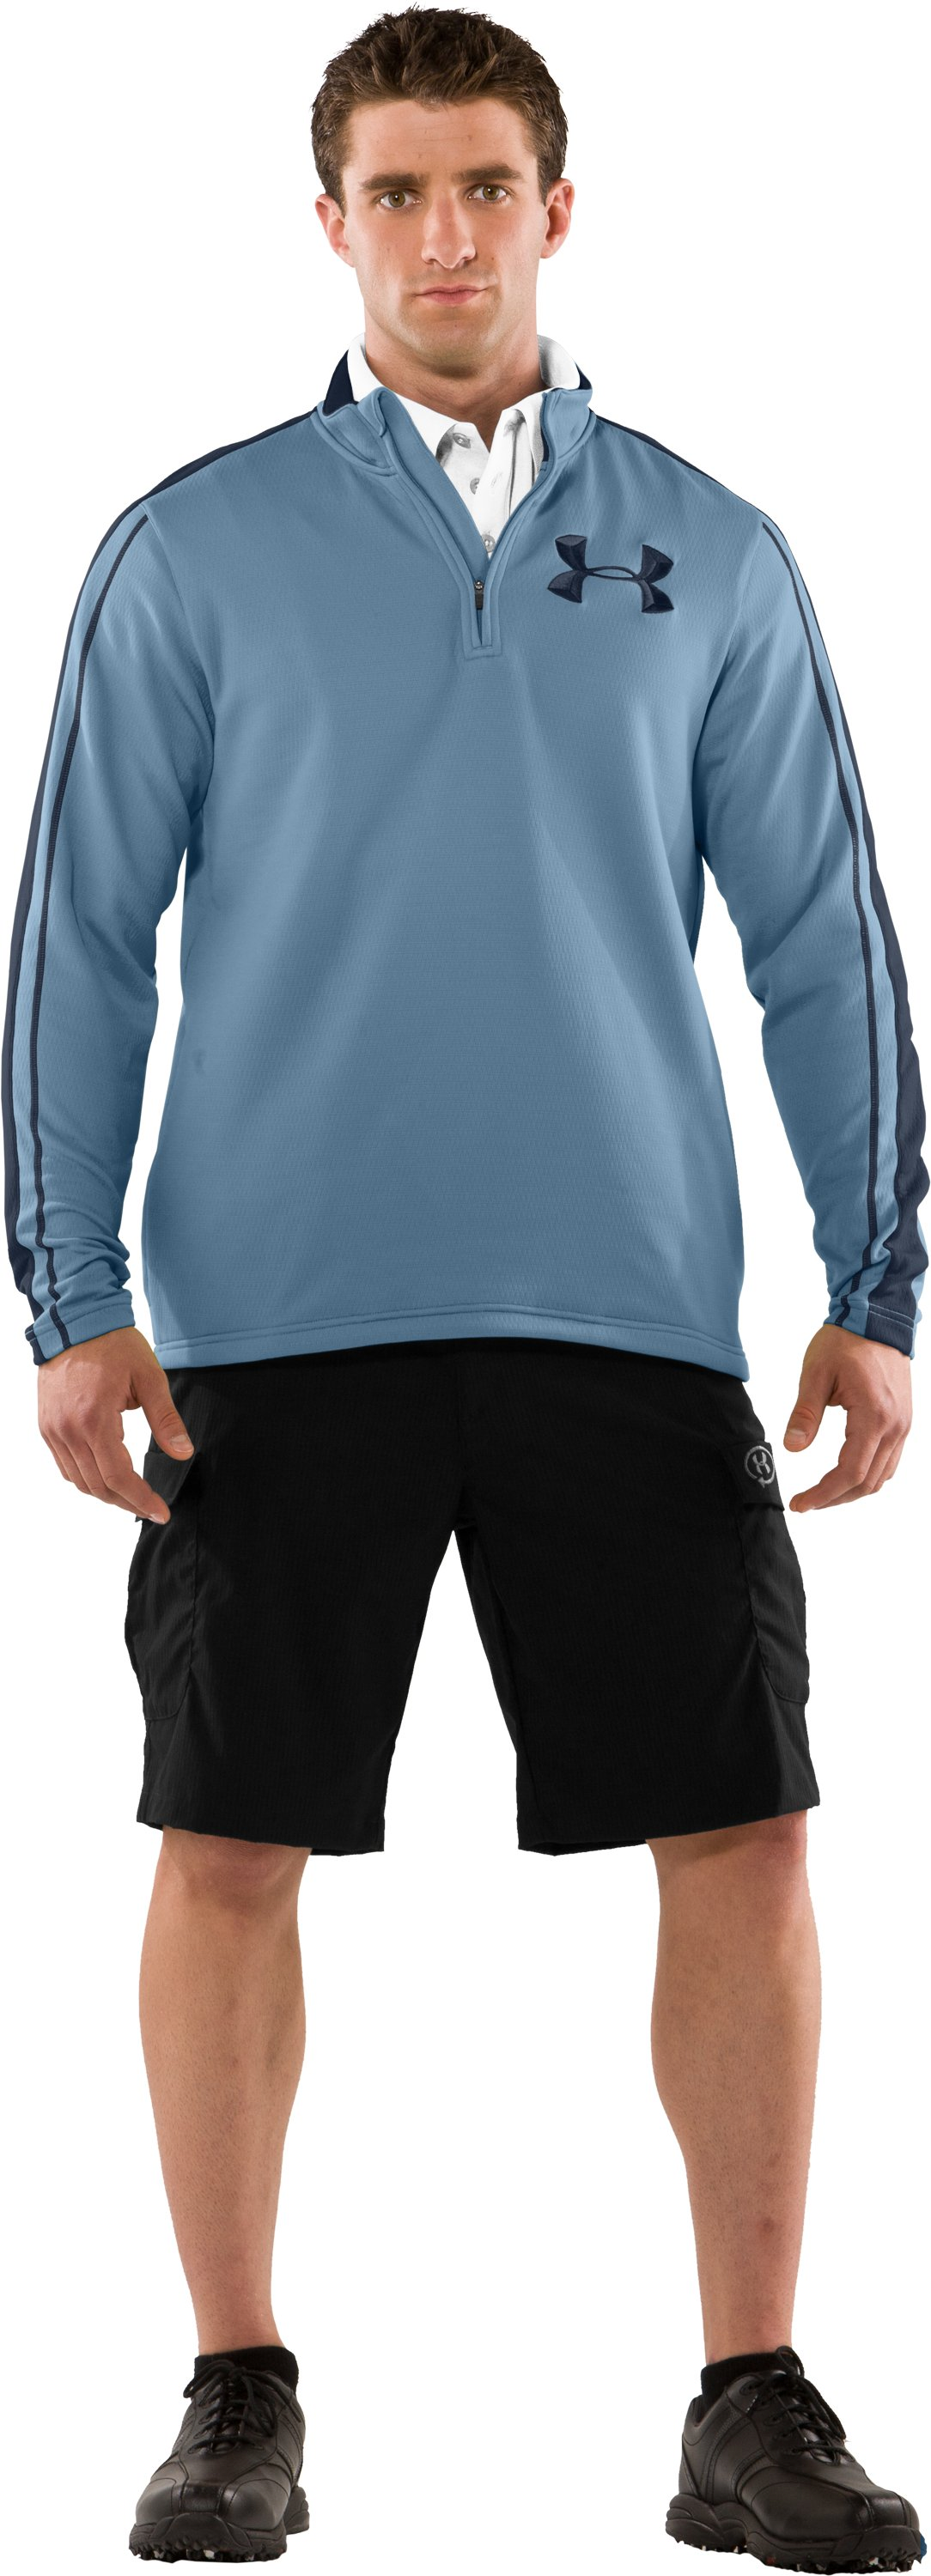 Men's UA Catalyst Focus 3.0 ¼ Zip Jacket, Solder, zoomed image